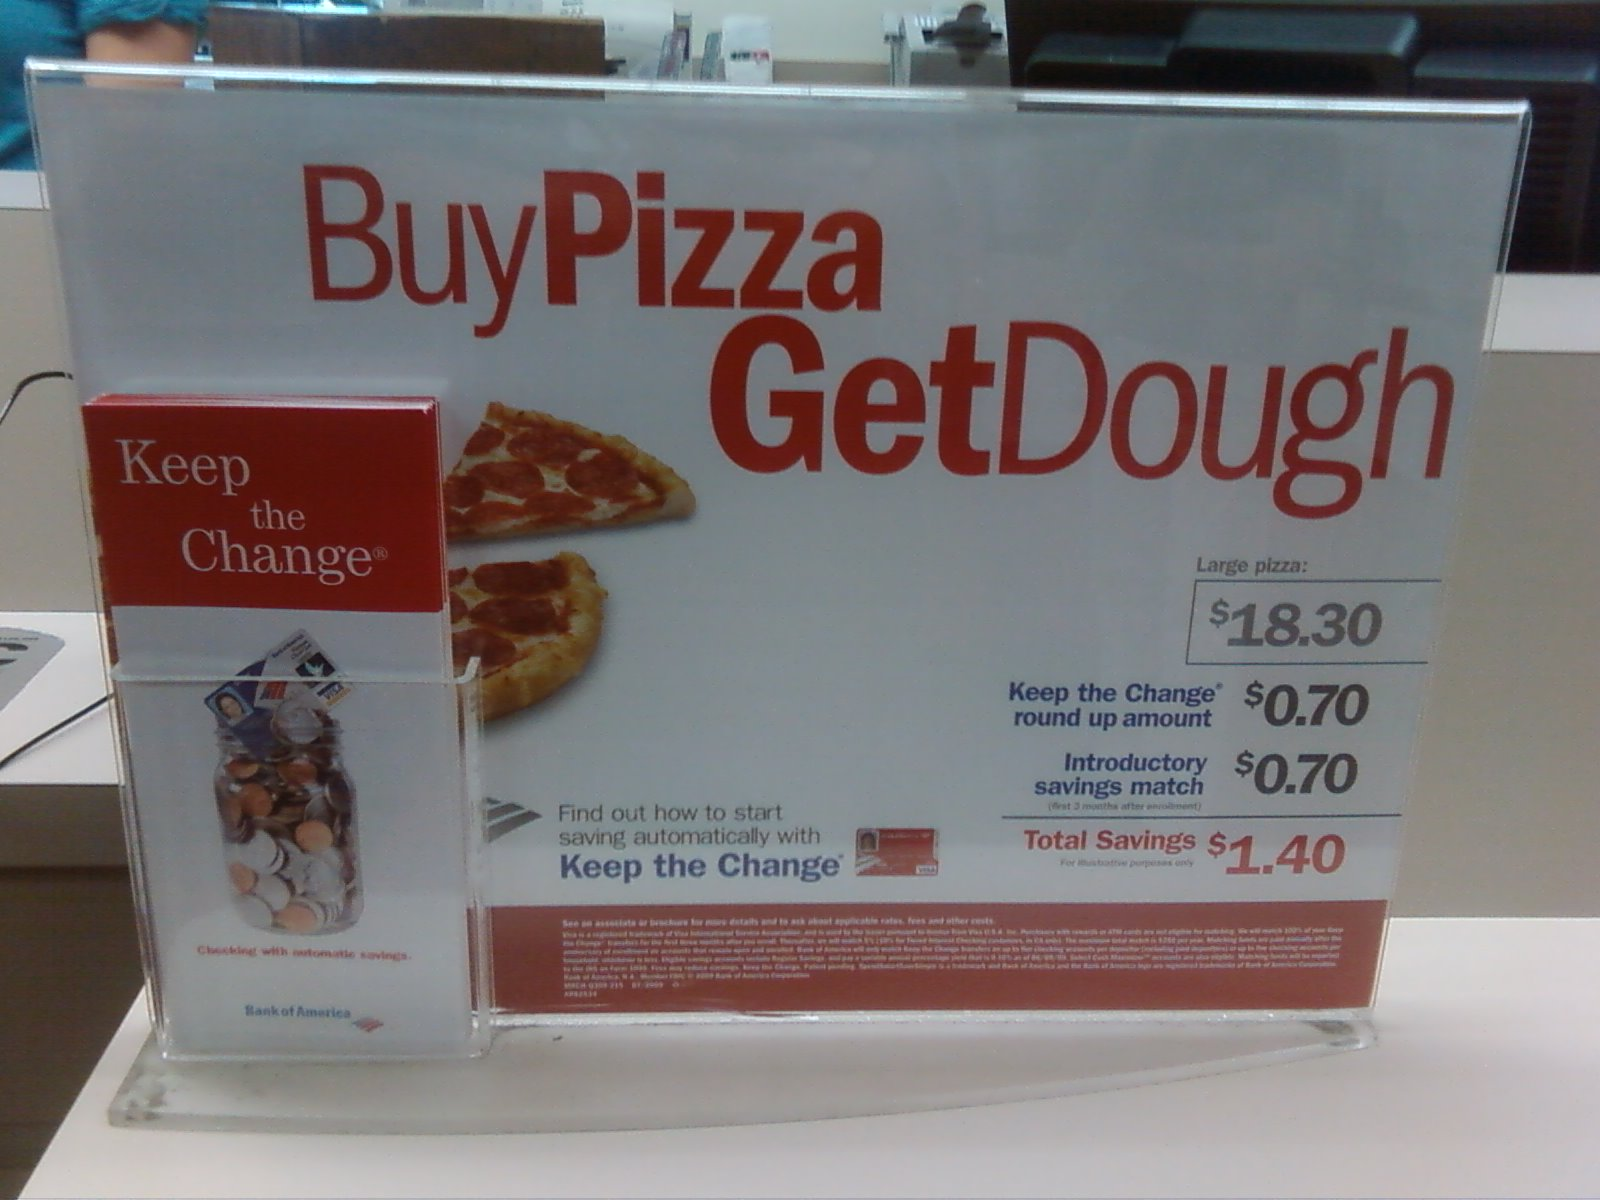 Buy Pizza, Get Dough, from Bank of America